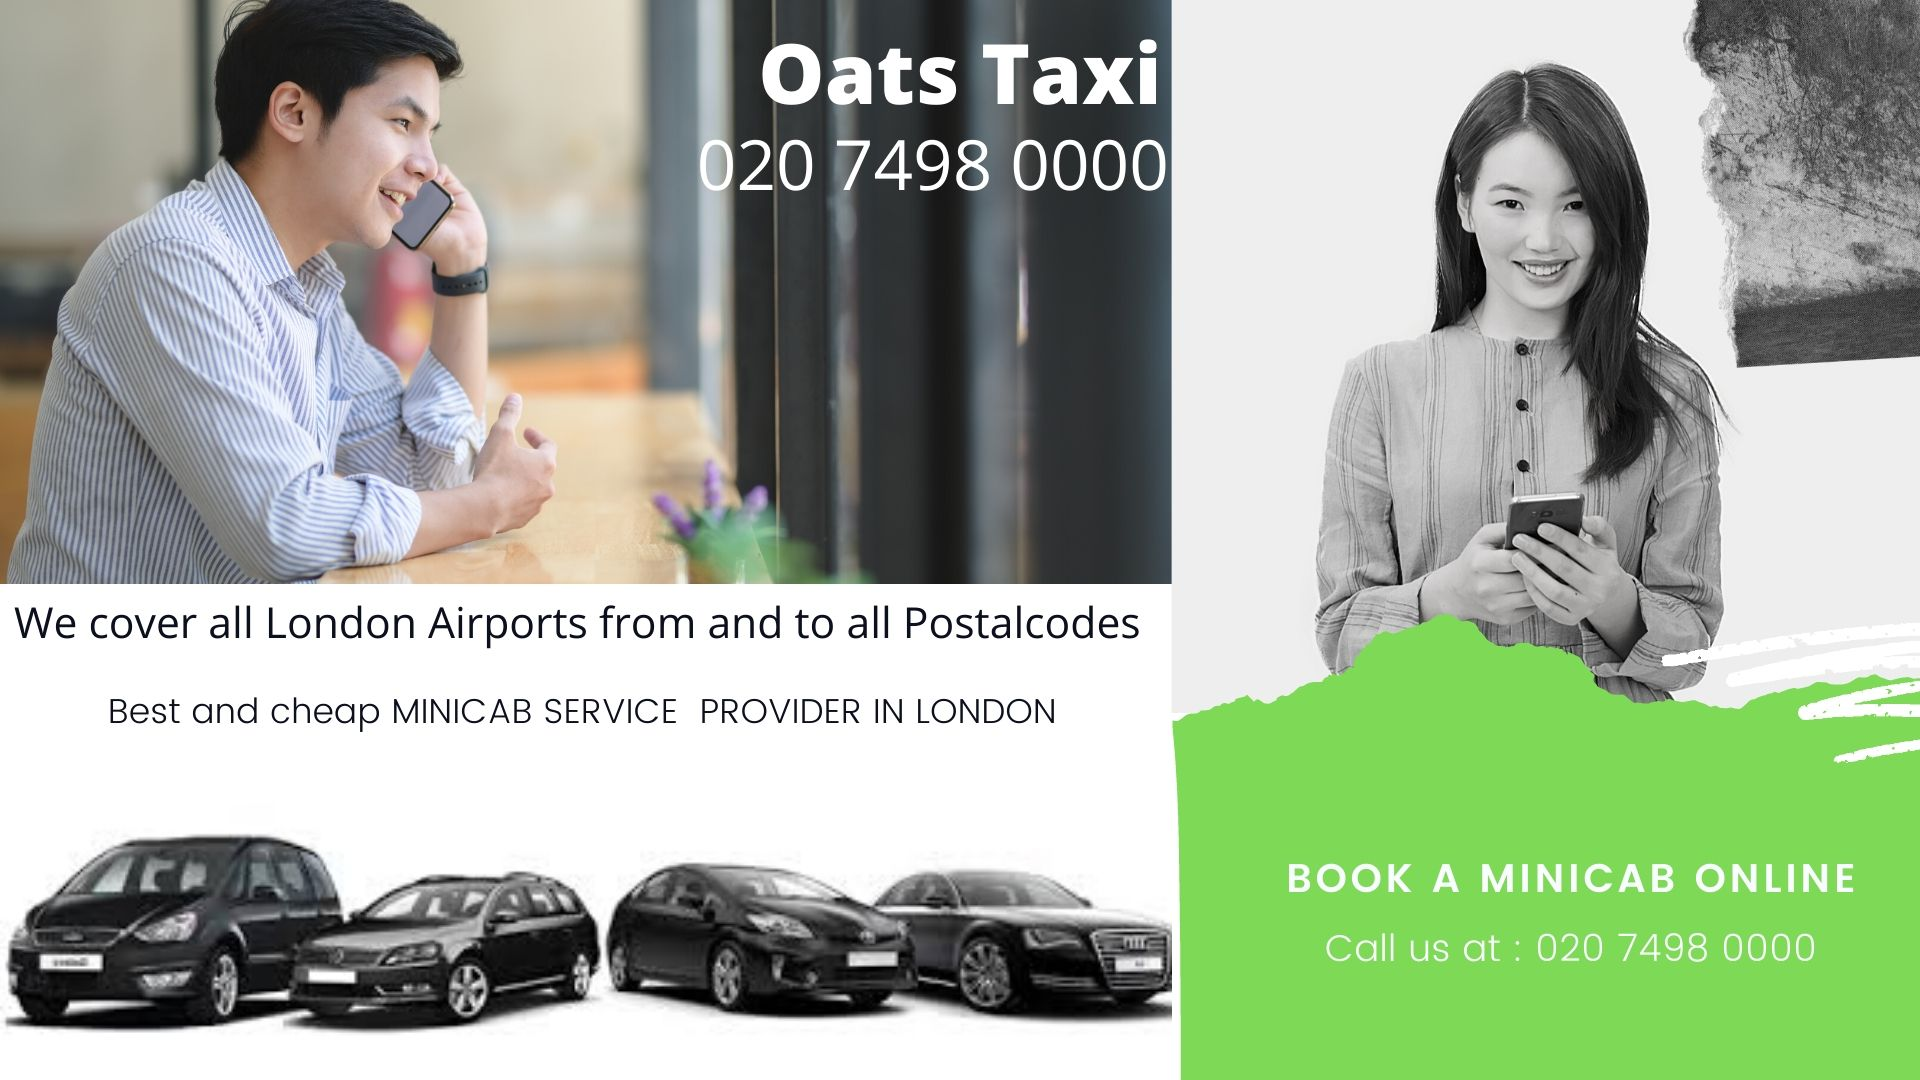 Nearest Taxi Office in Streatham | Gatwick Airport | Call now : 02074980000